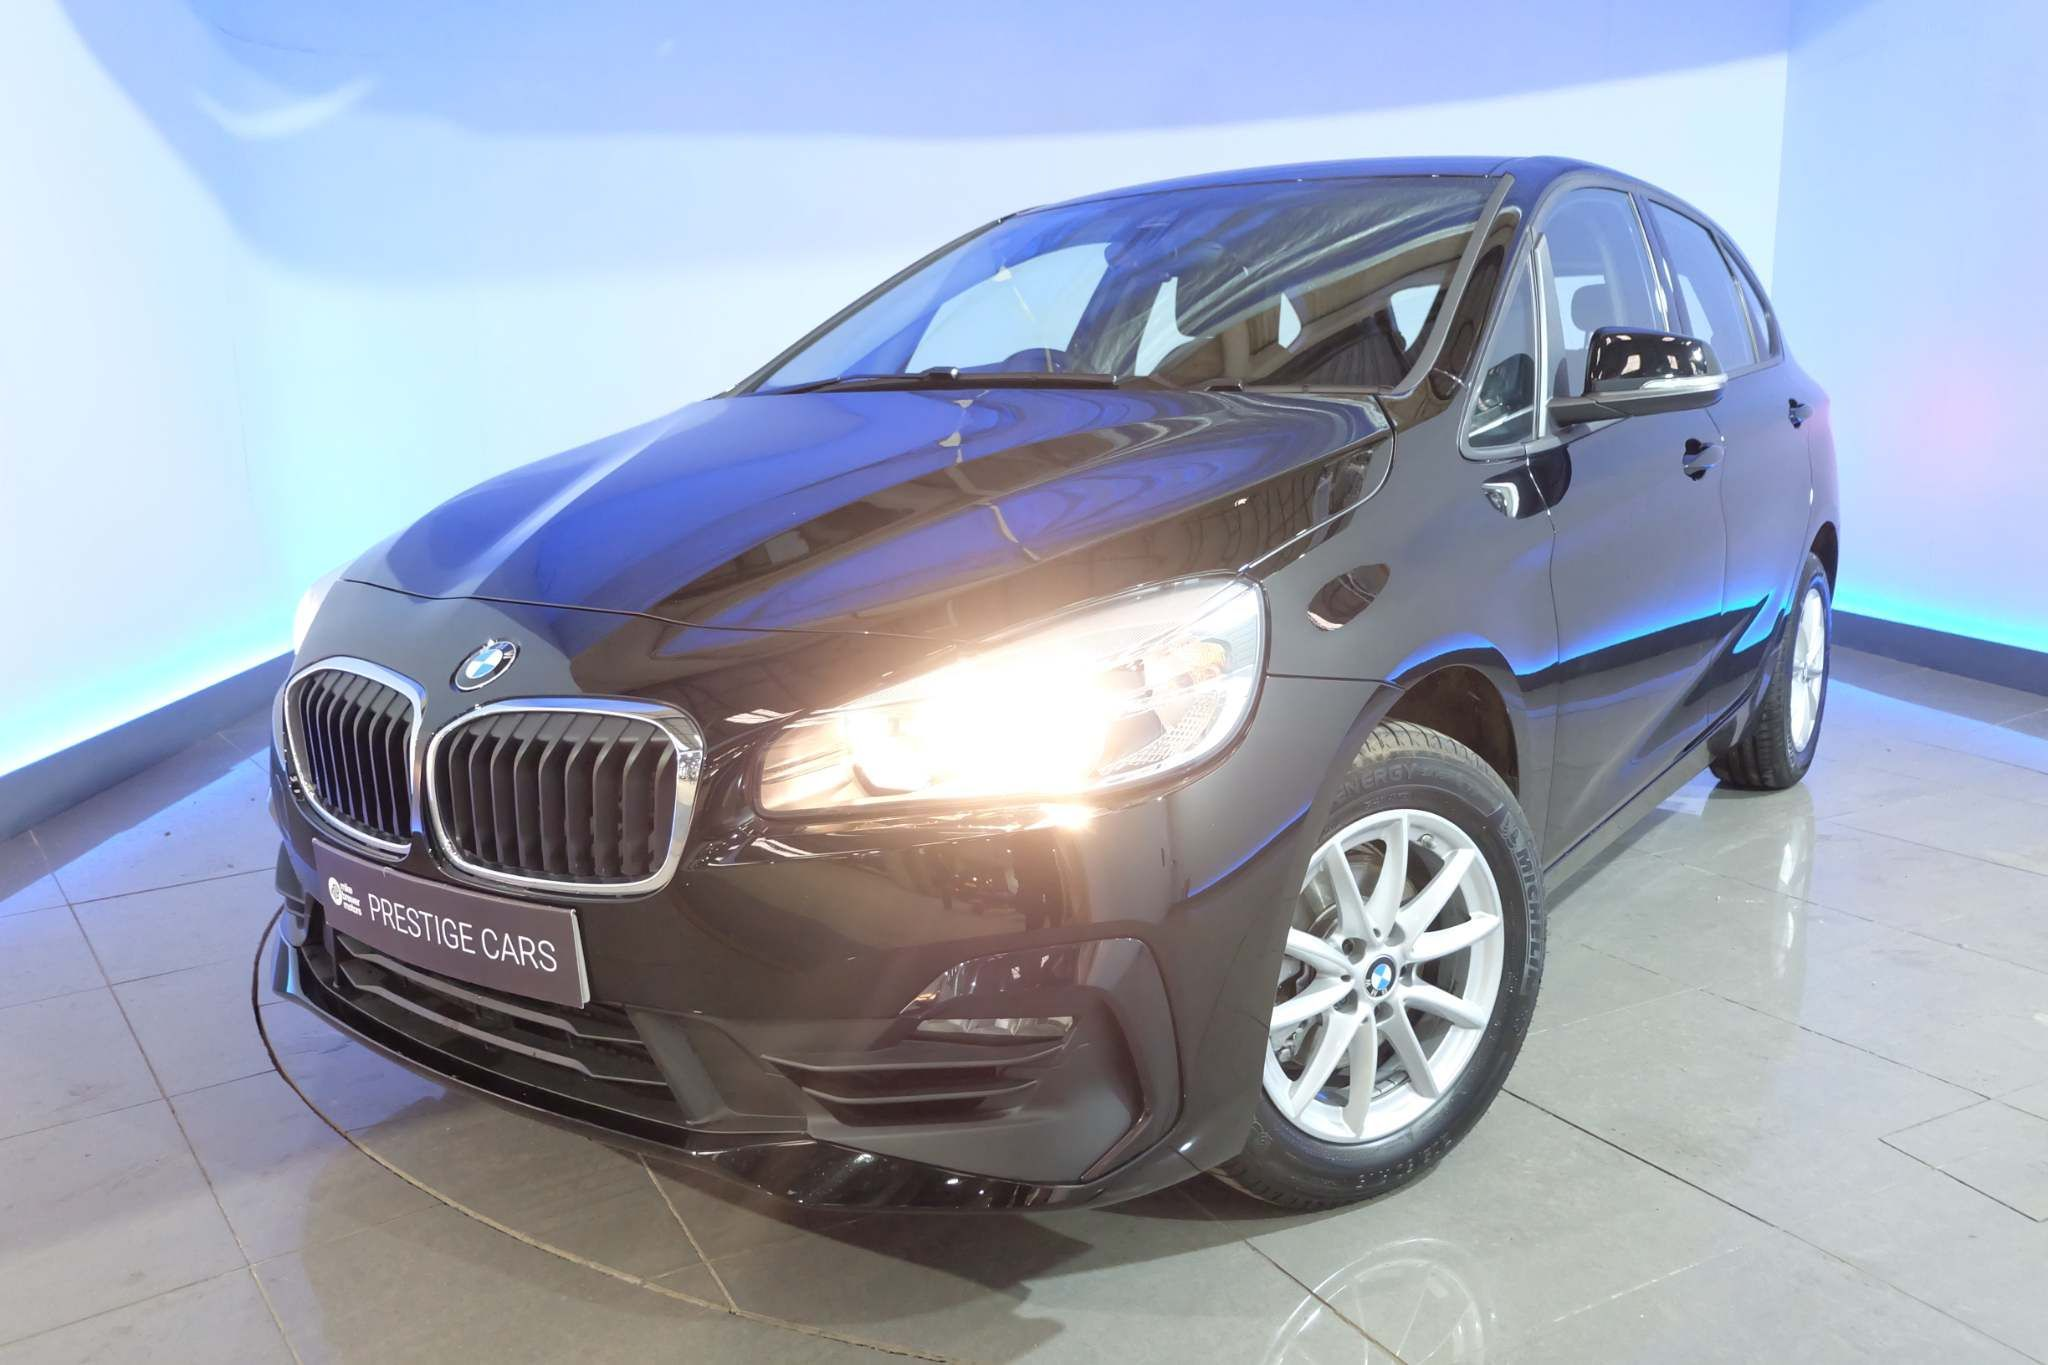 Used BMW 2 Series Active Tourer 1.5 218i Se Active Tourer (s/s) 5dr